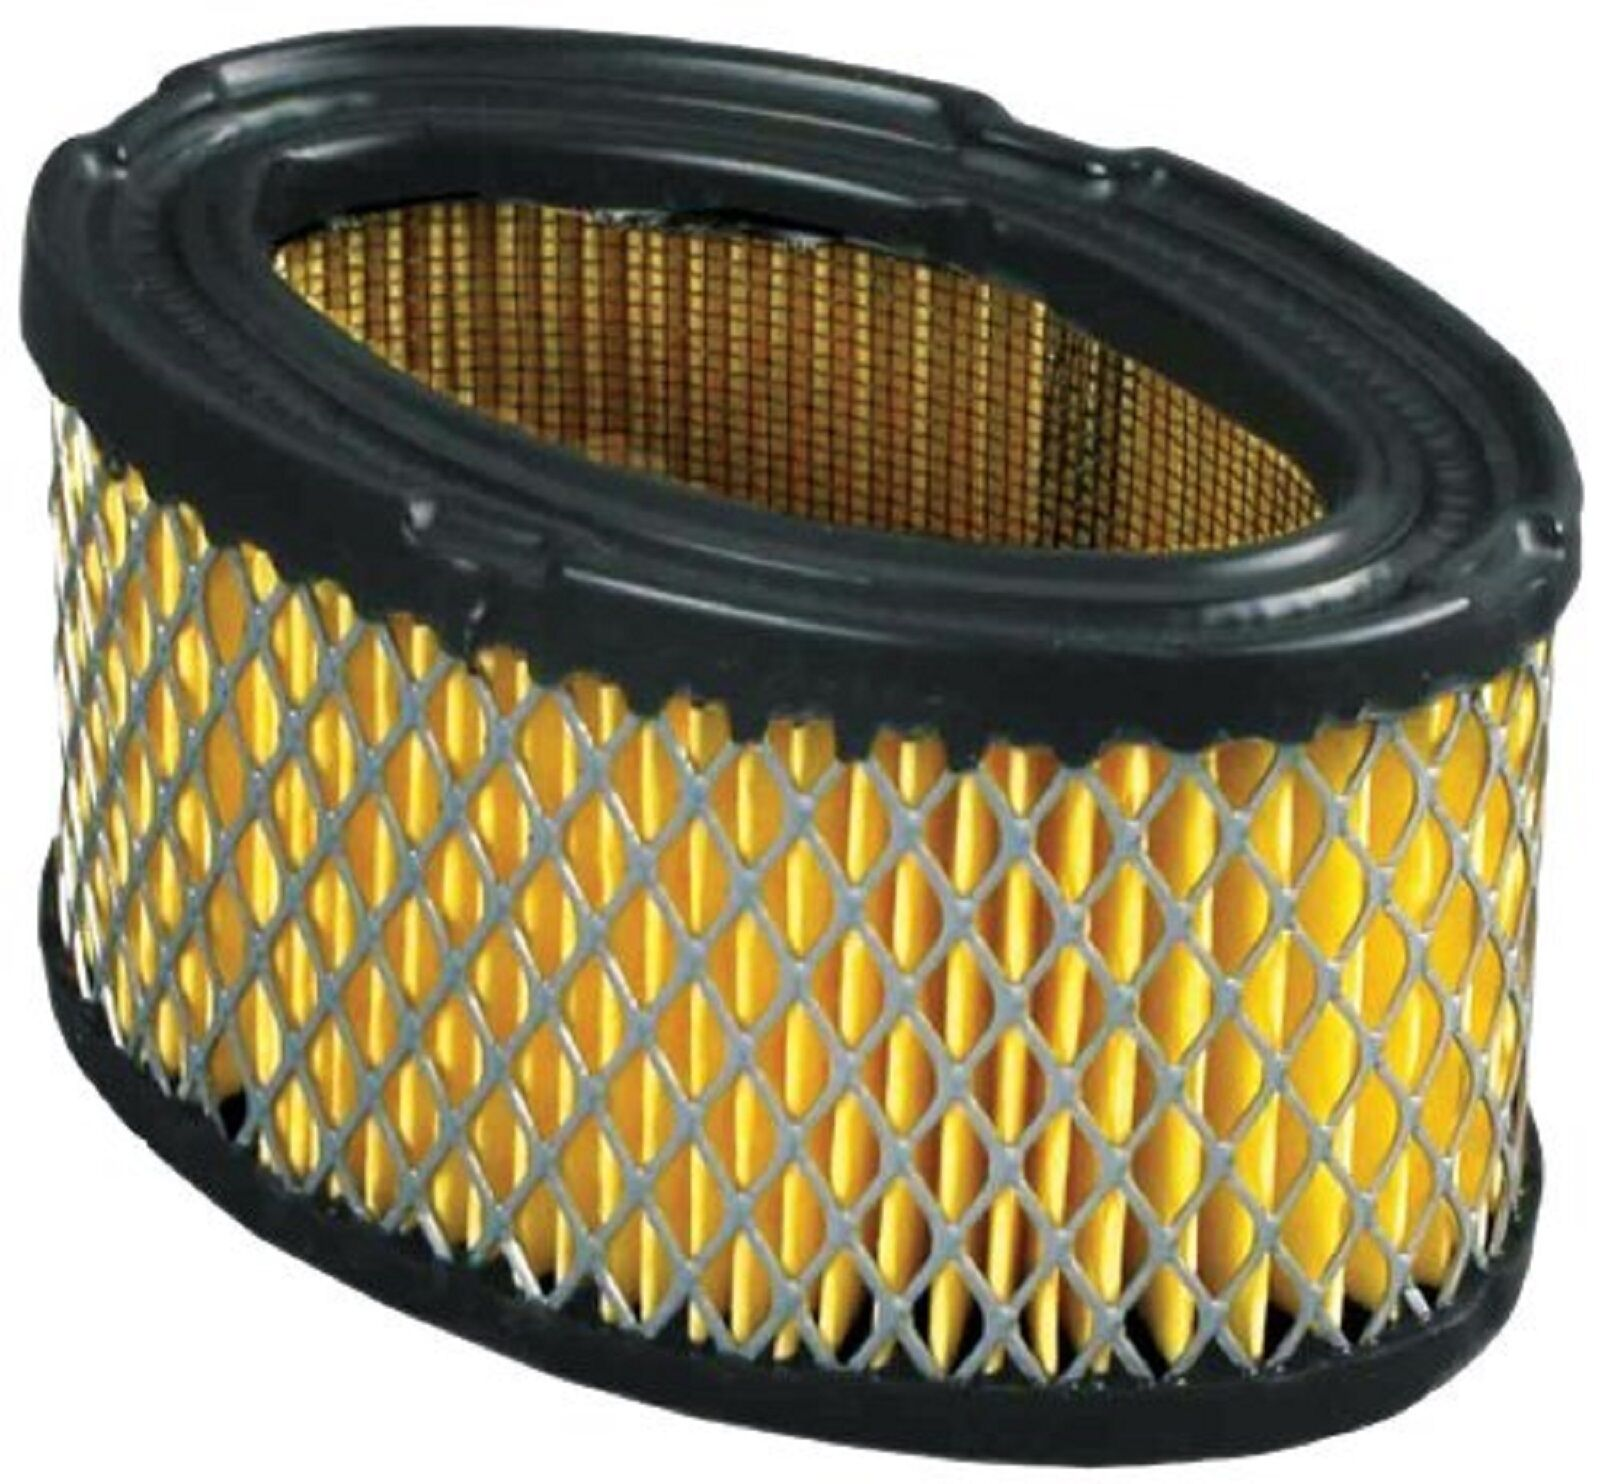 Air filter replaces Tecumseh 33268 John Deere M49746